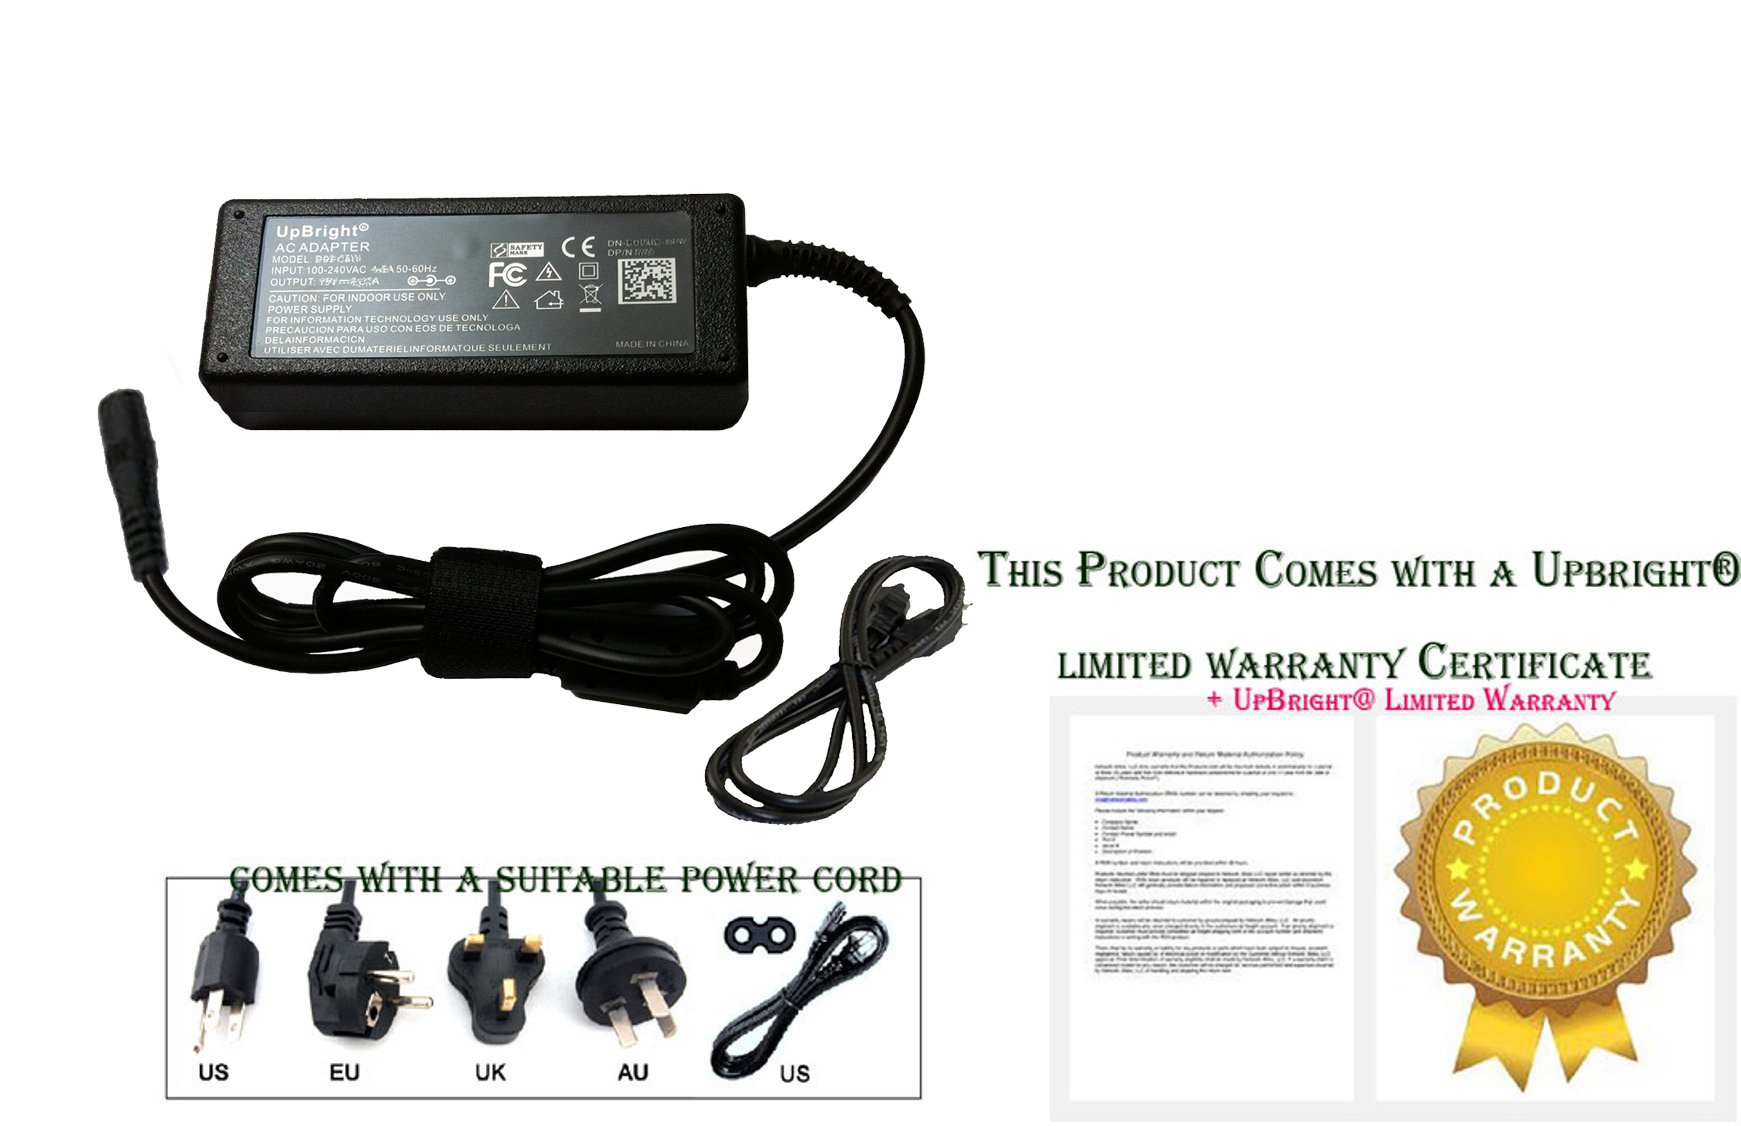 UPBRIGHT NEW Global 2-Prong AC/DC Adapter For Model CL2902-B CL2902B CL2902-1 CL29021 CL2902- B Changzhou Mulin Electric Equipment Co. Ltd Power Supply Cord Cable PS Battery Charger Mains PSU